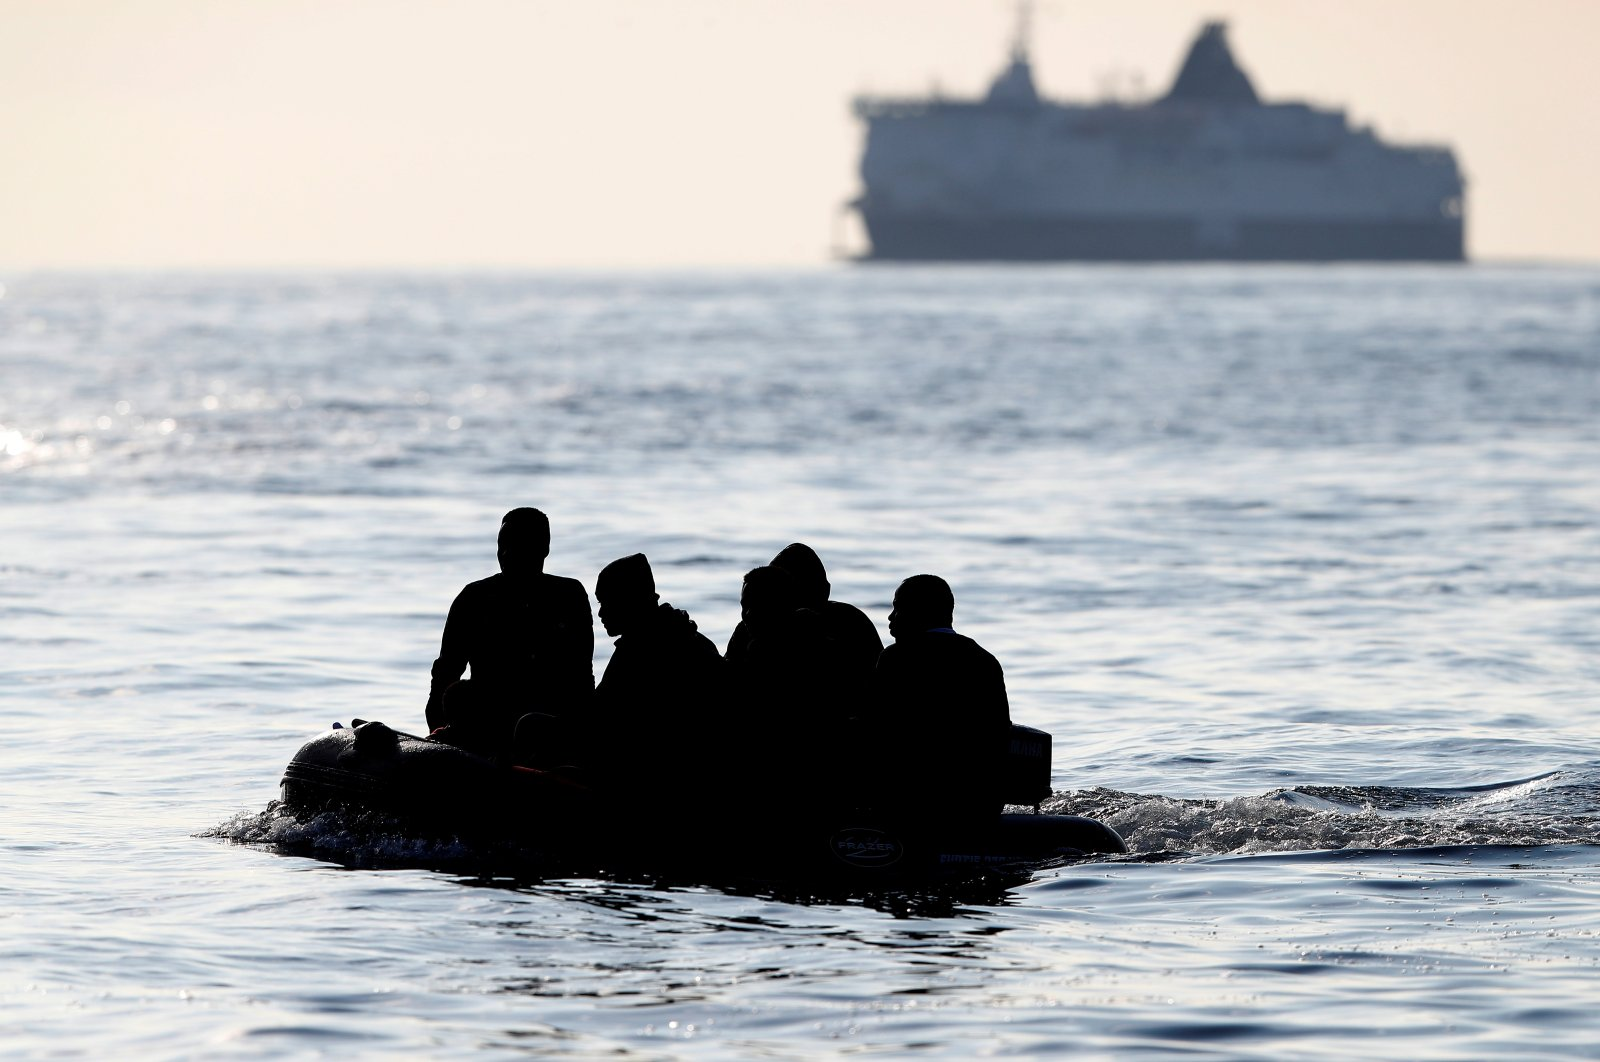 People who say they are from Darfur, Sudan cross the English Channel in an inflatable boat near Dover, Britain, Aug. 4, 2021. (Reuters Photo)